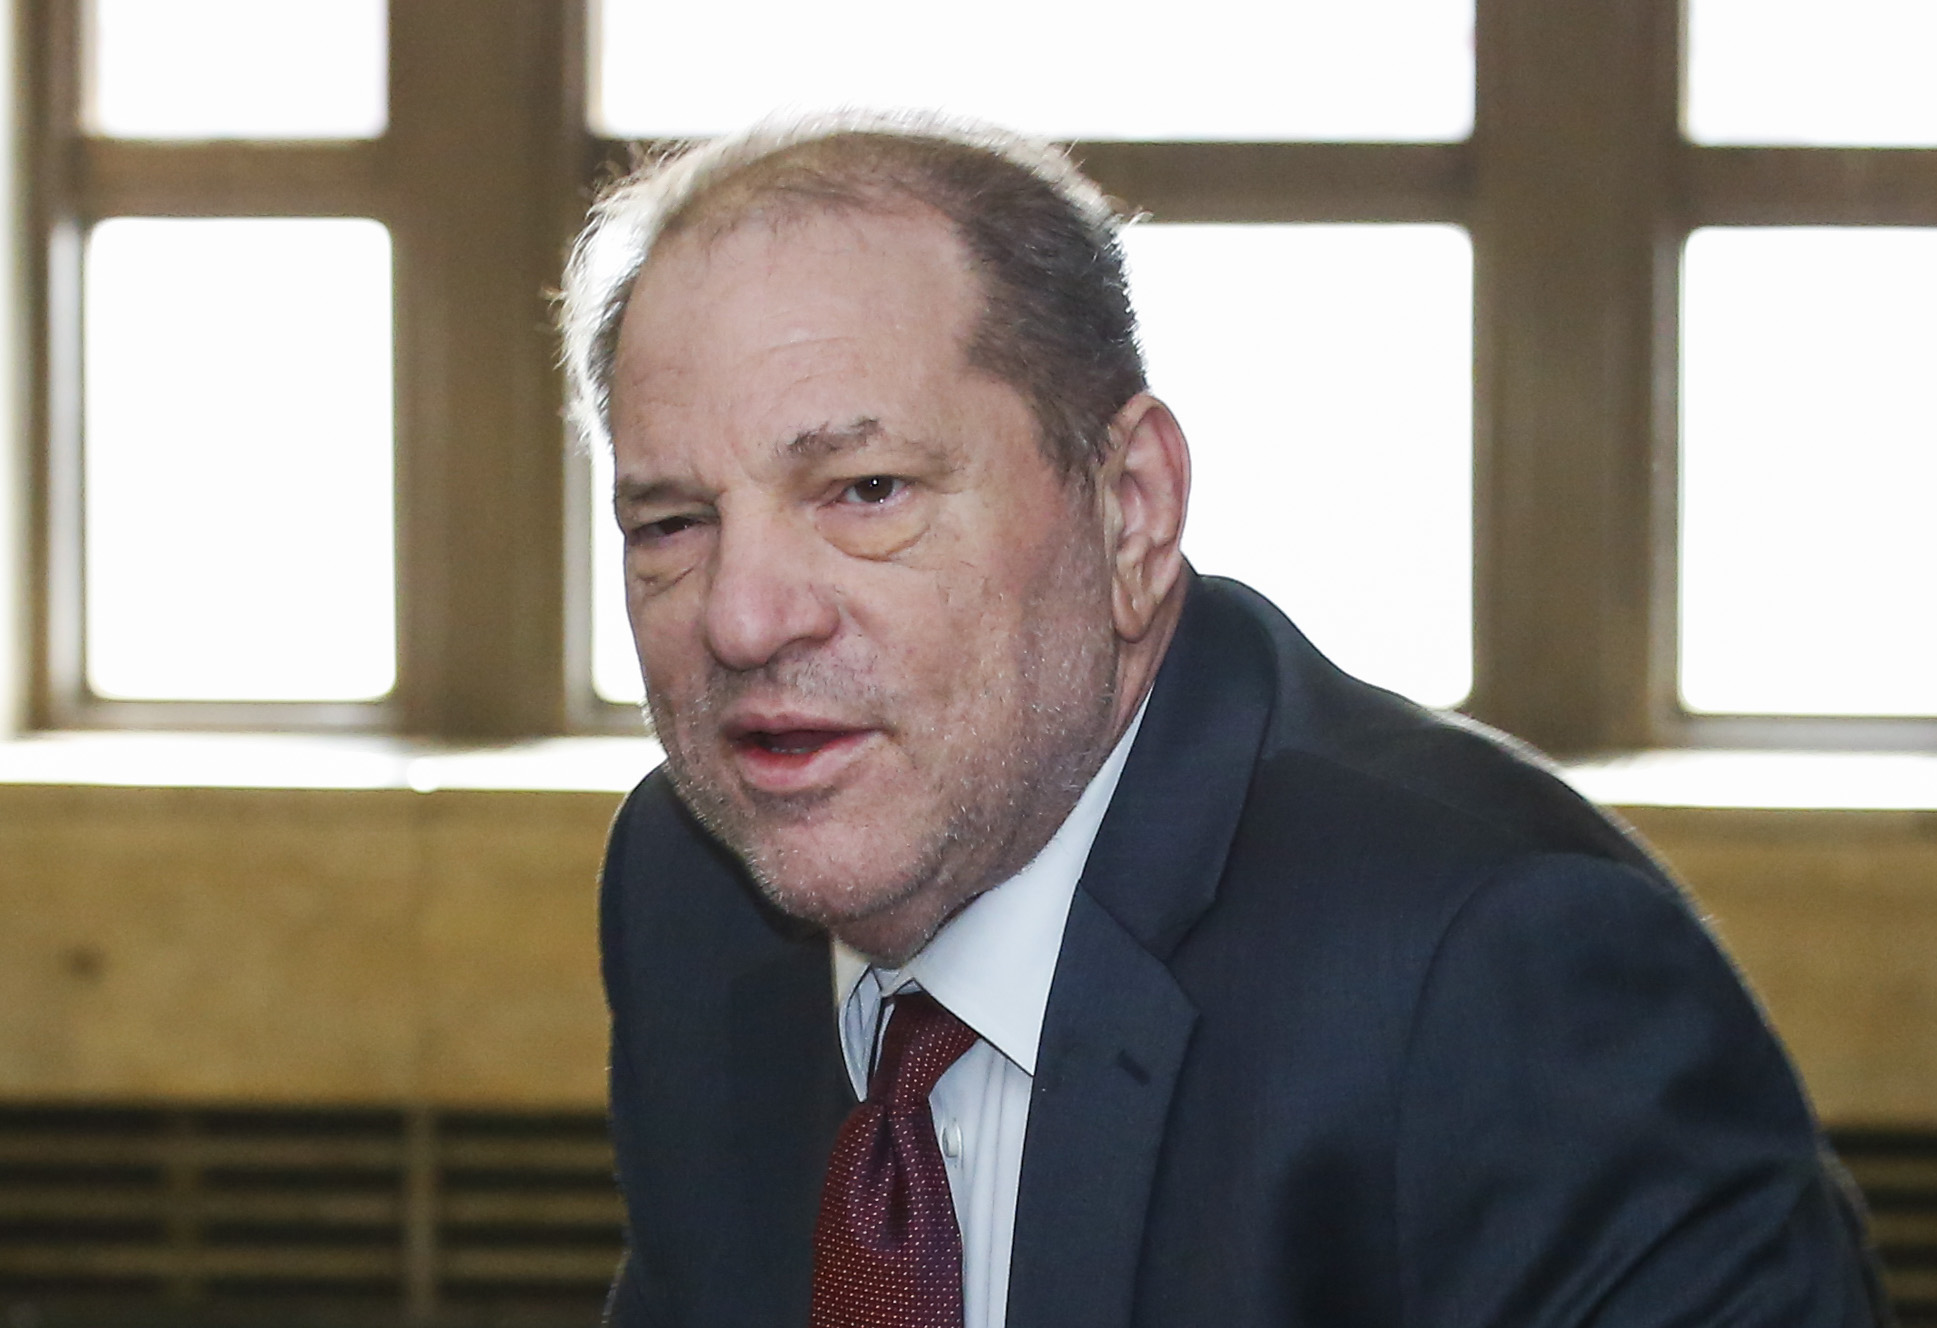 Harvey Weinstein arrives at court on Feb. 20, 2020 in New York City.